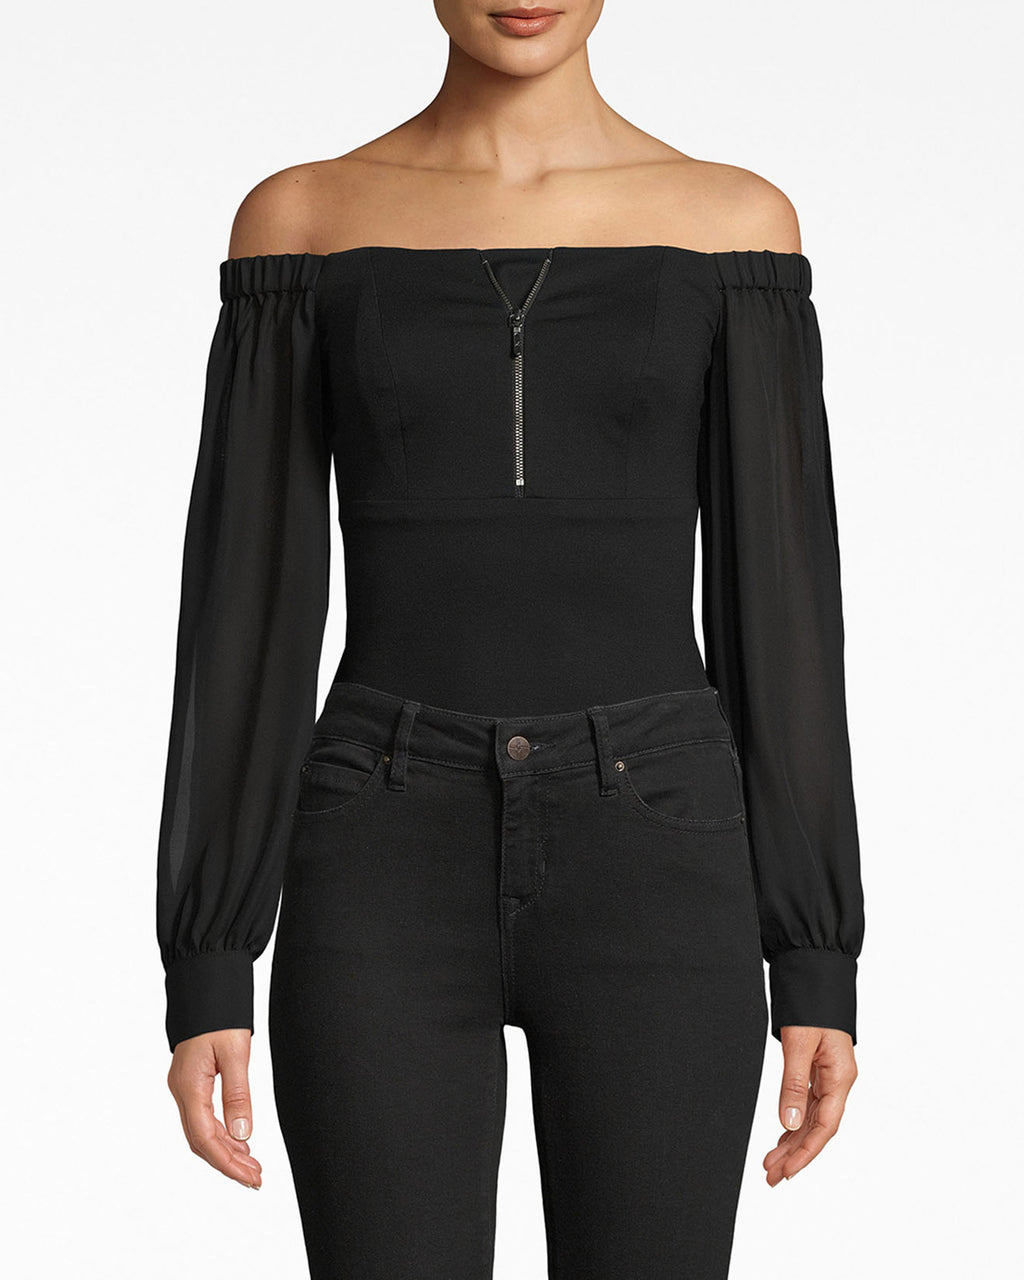 AR20031 - COMBO BODYSUIT - tops - shirts - The structured, zipper-embellished bodice on this bodysuit is matched with flowy, mesh sleeves (see that cutout?). It's a style that can be easily paired with leather or simply worn solo.